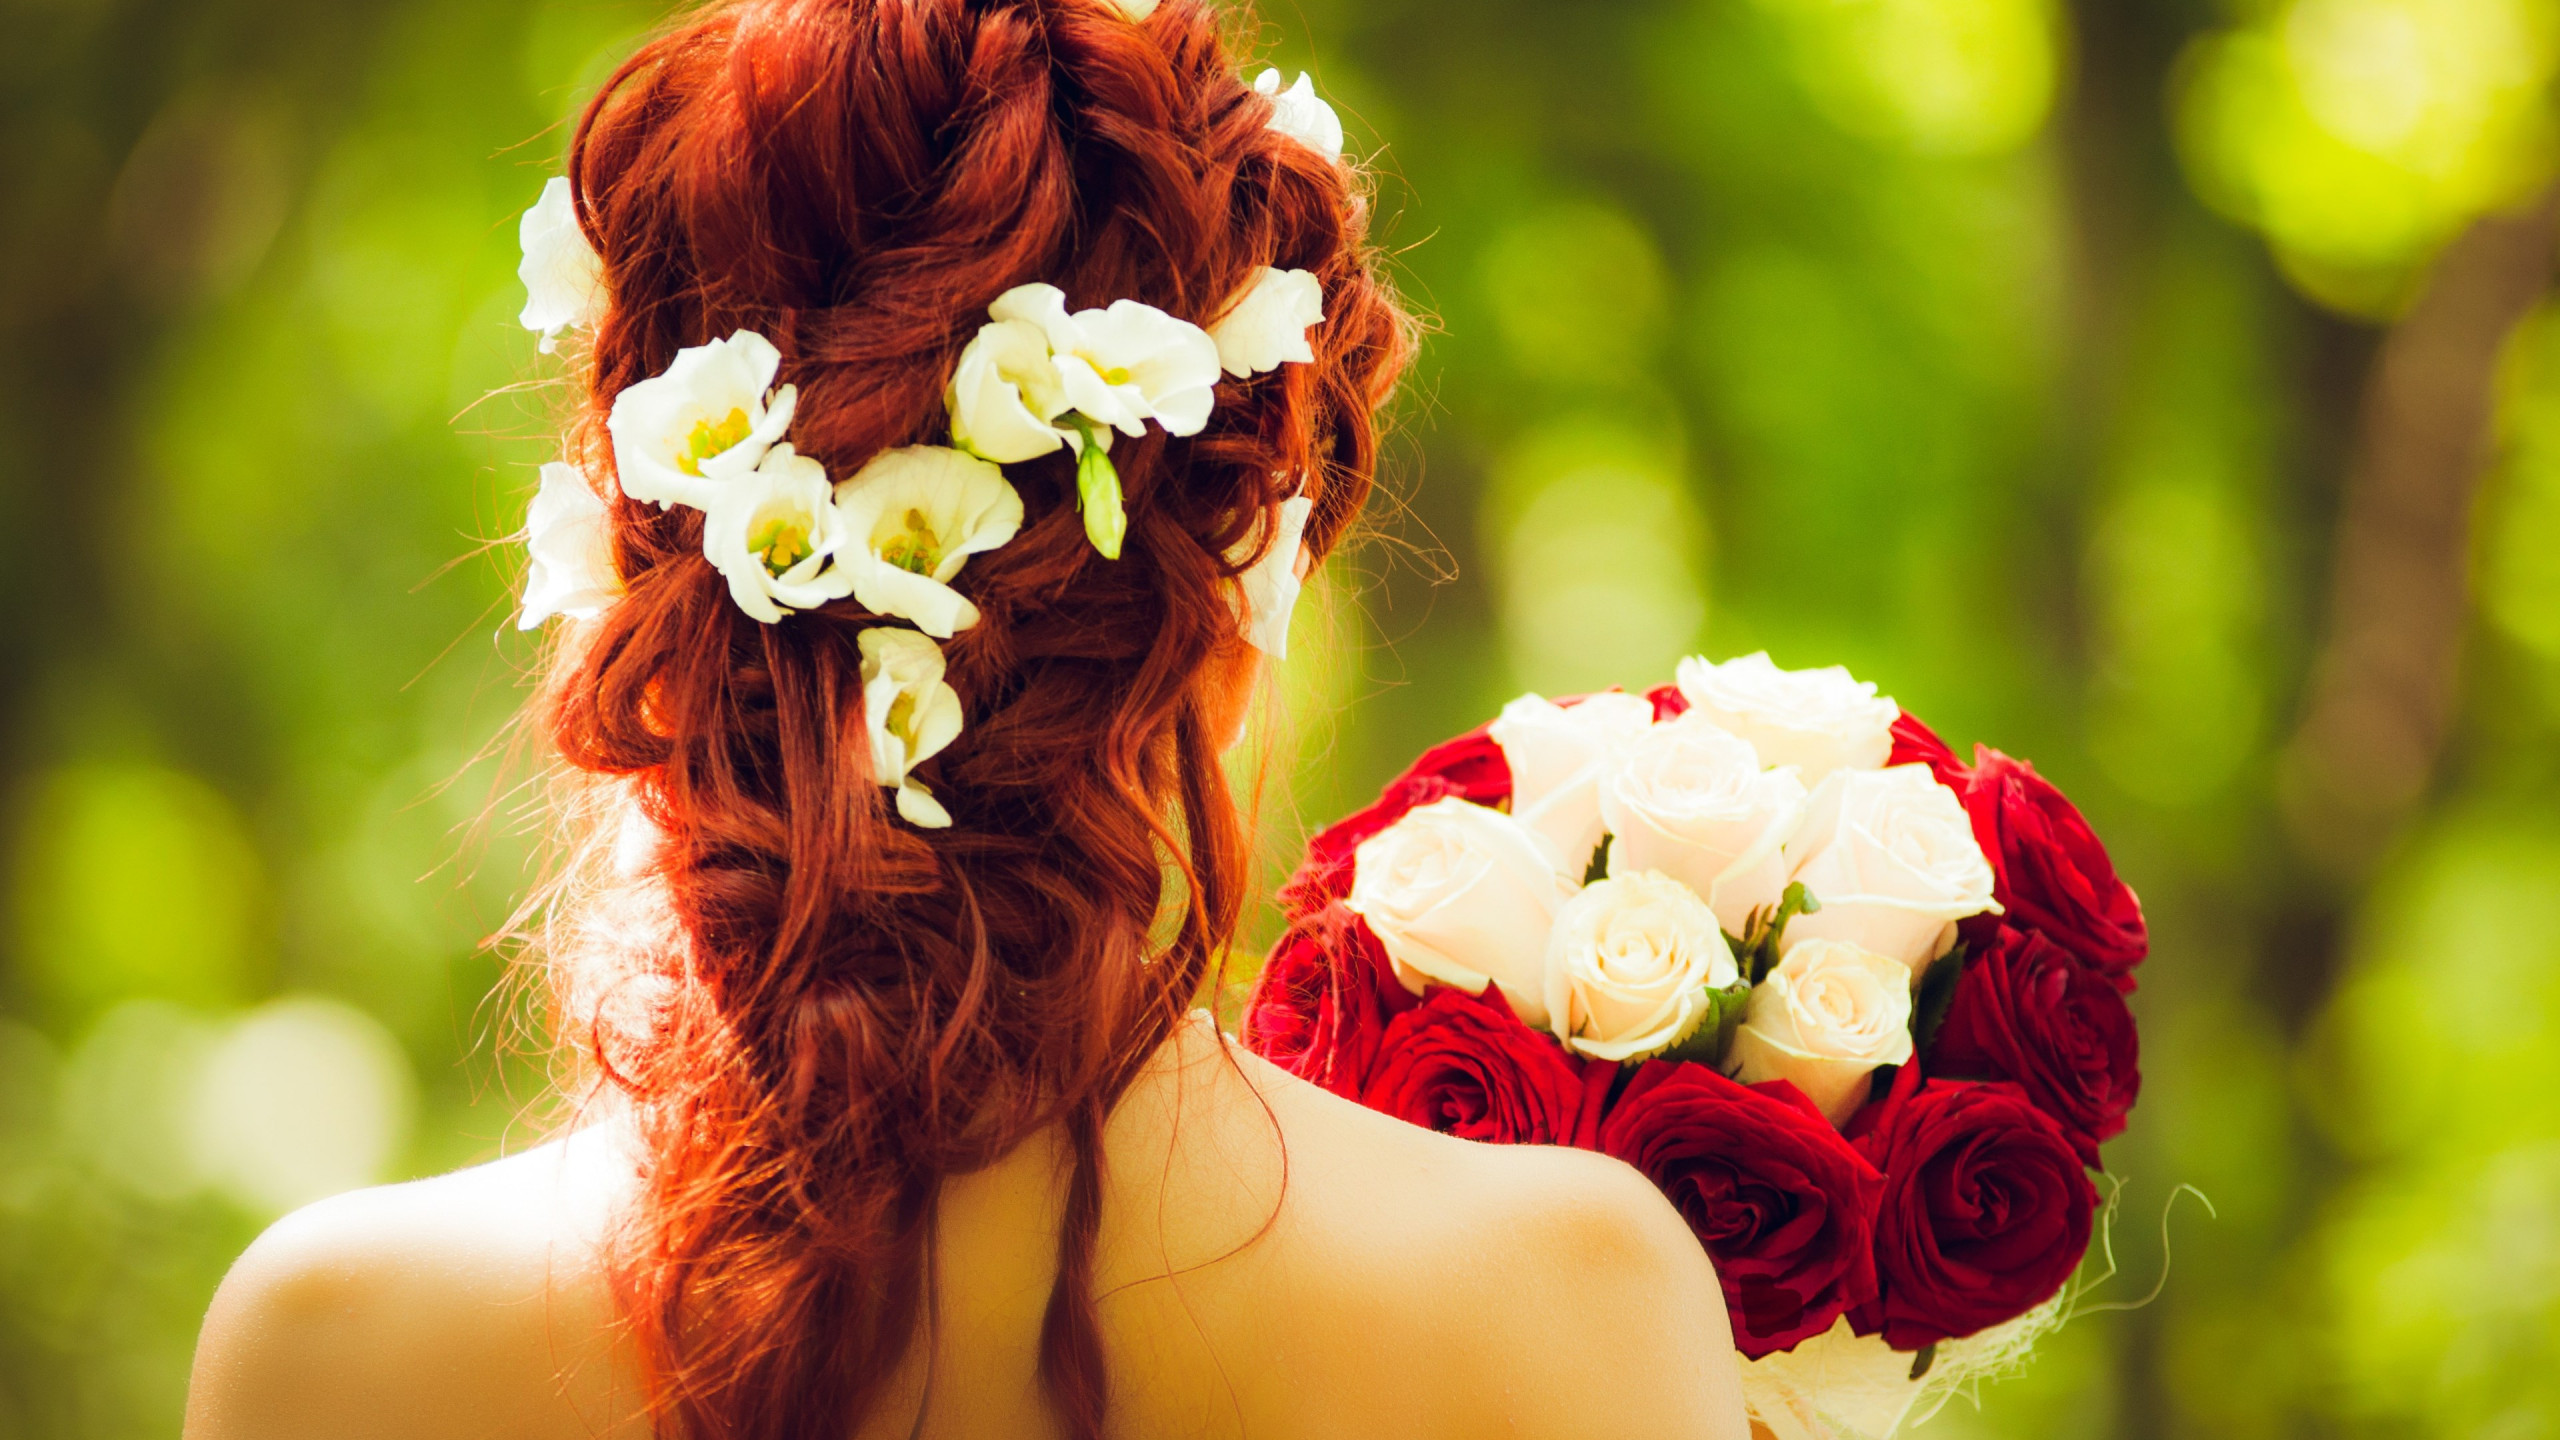 Bride and wedding flowers | 2560x1440 wallpaper